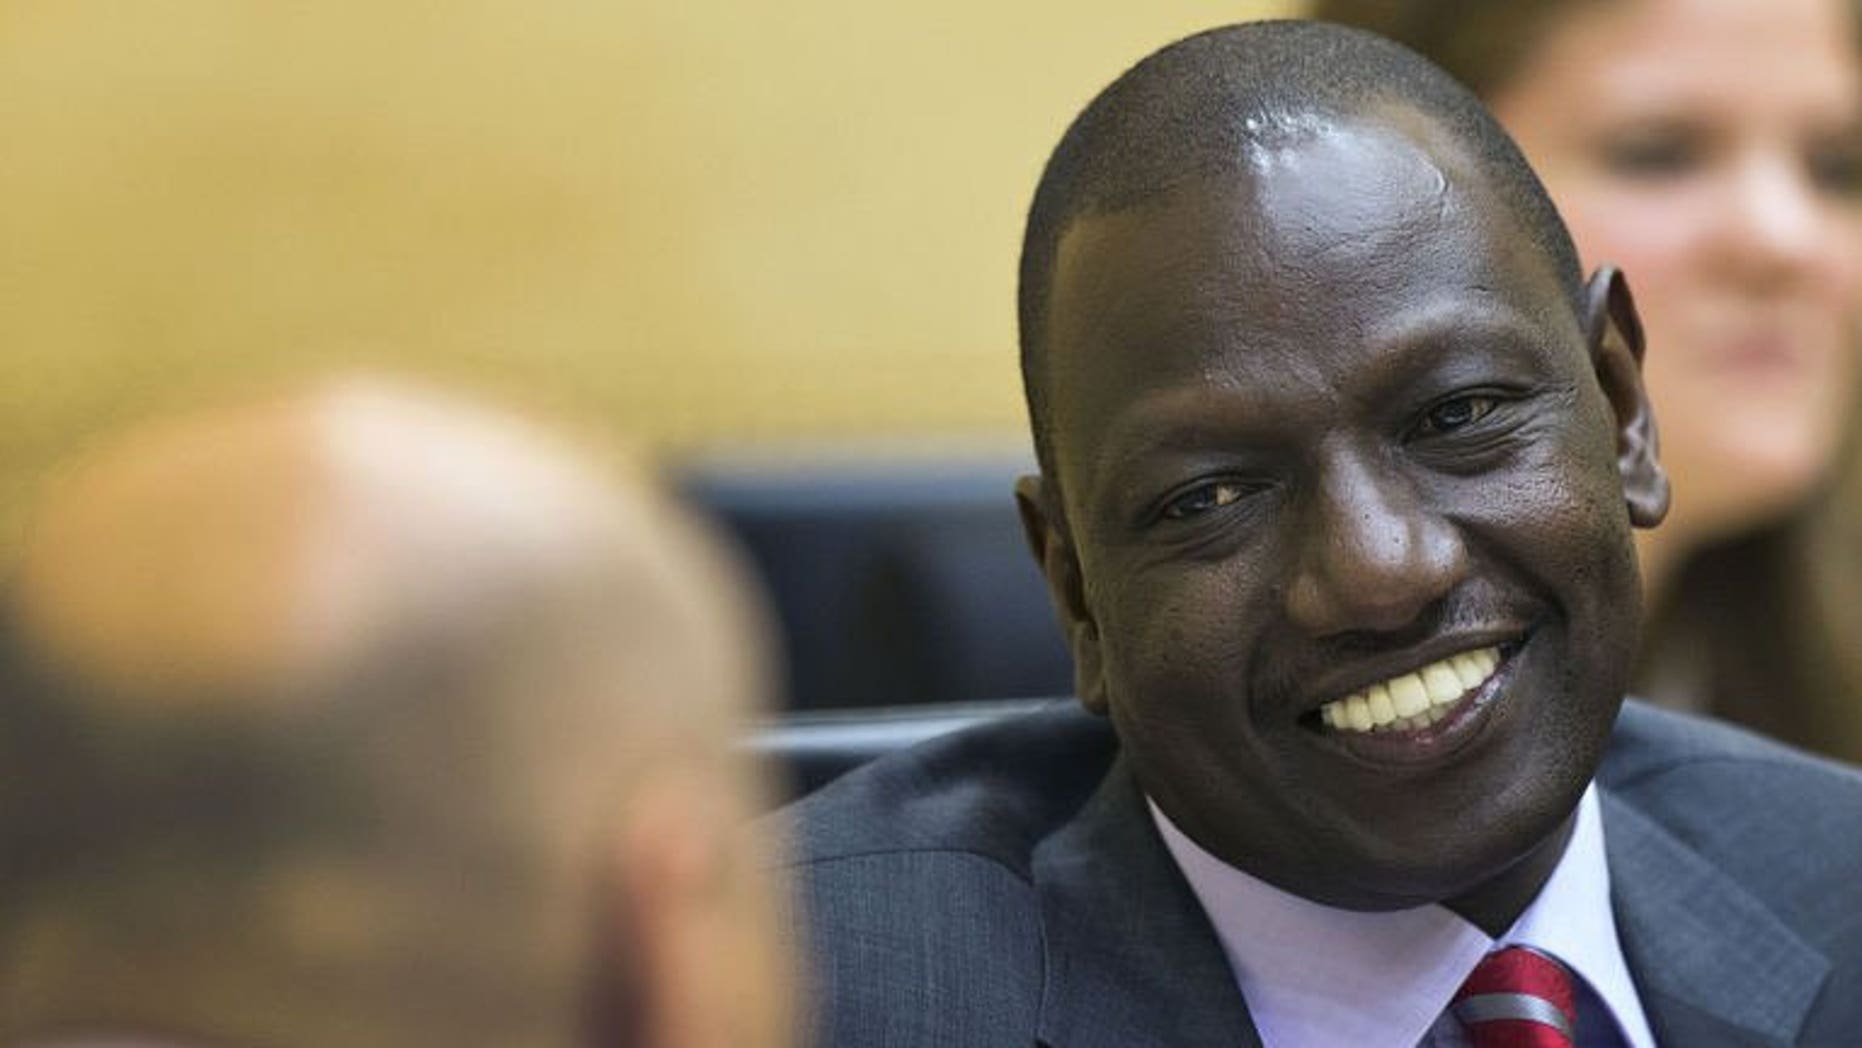 Kenya's Vice President William Ruto (right) speaks with his lawyer before the start of his trial at the International Criminal Court in The Hague, on September 10, 2013.